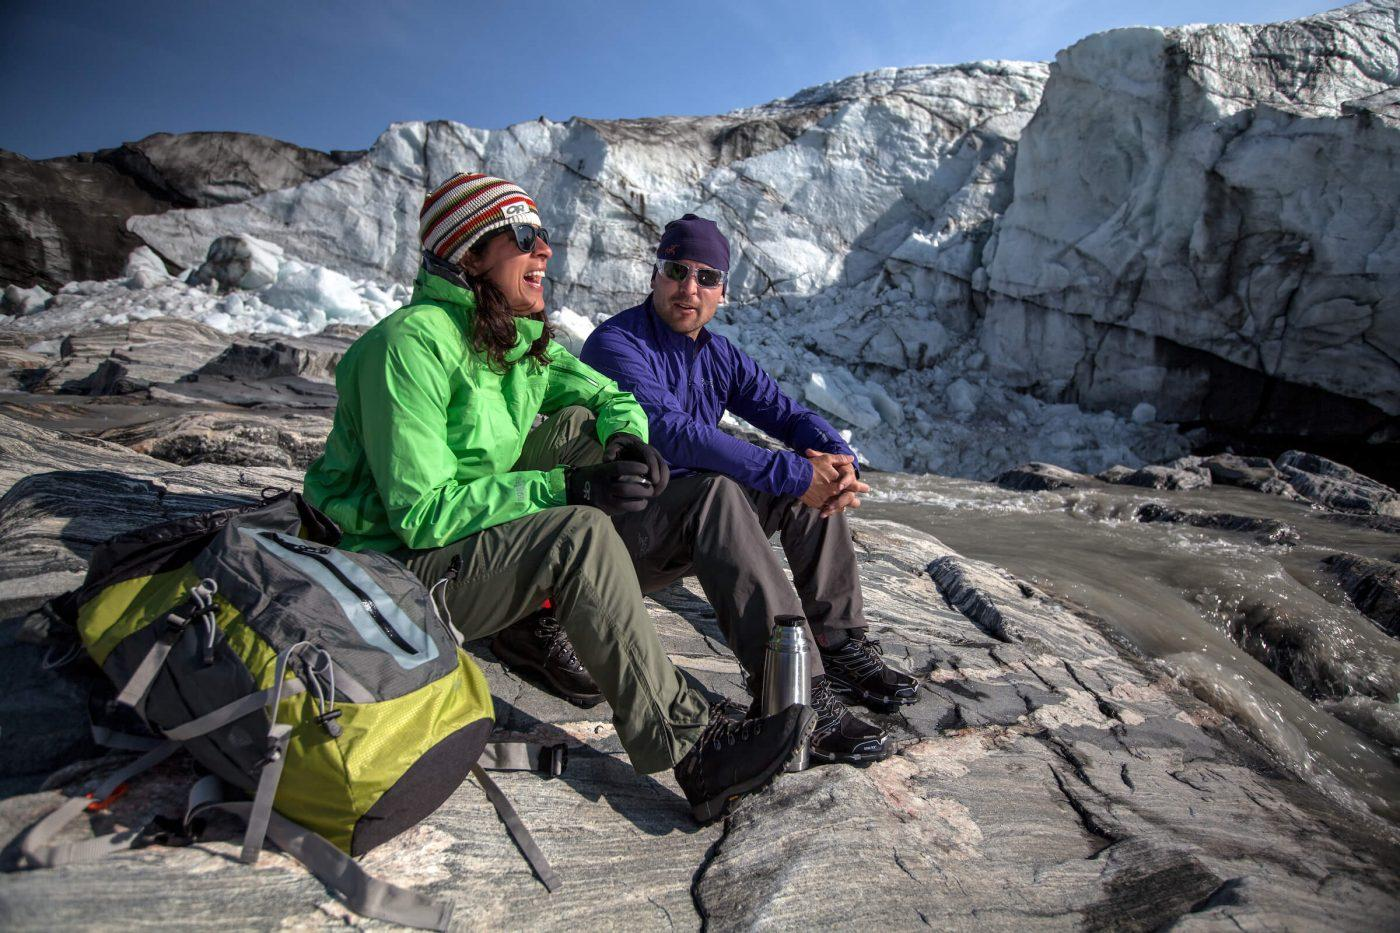 Two hikers enjoying a day in the sun by the Russell Glacier near Kangerlussuaq in Greenland. Photo by Mads Pihl